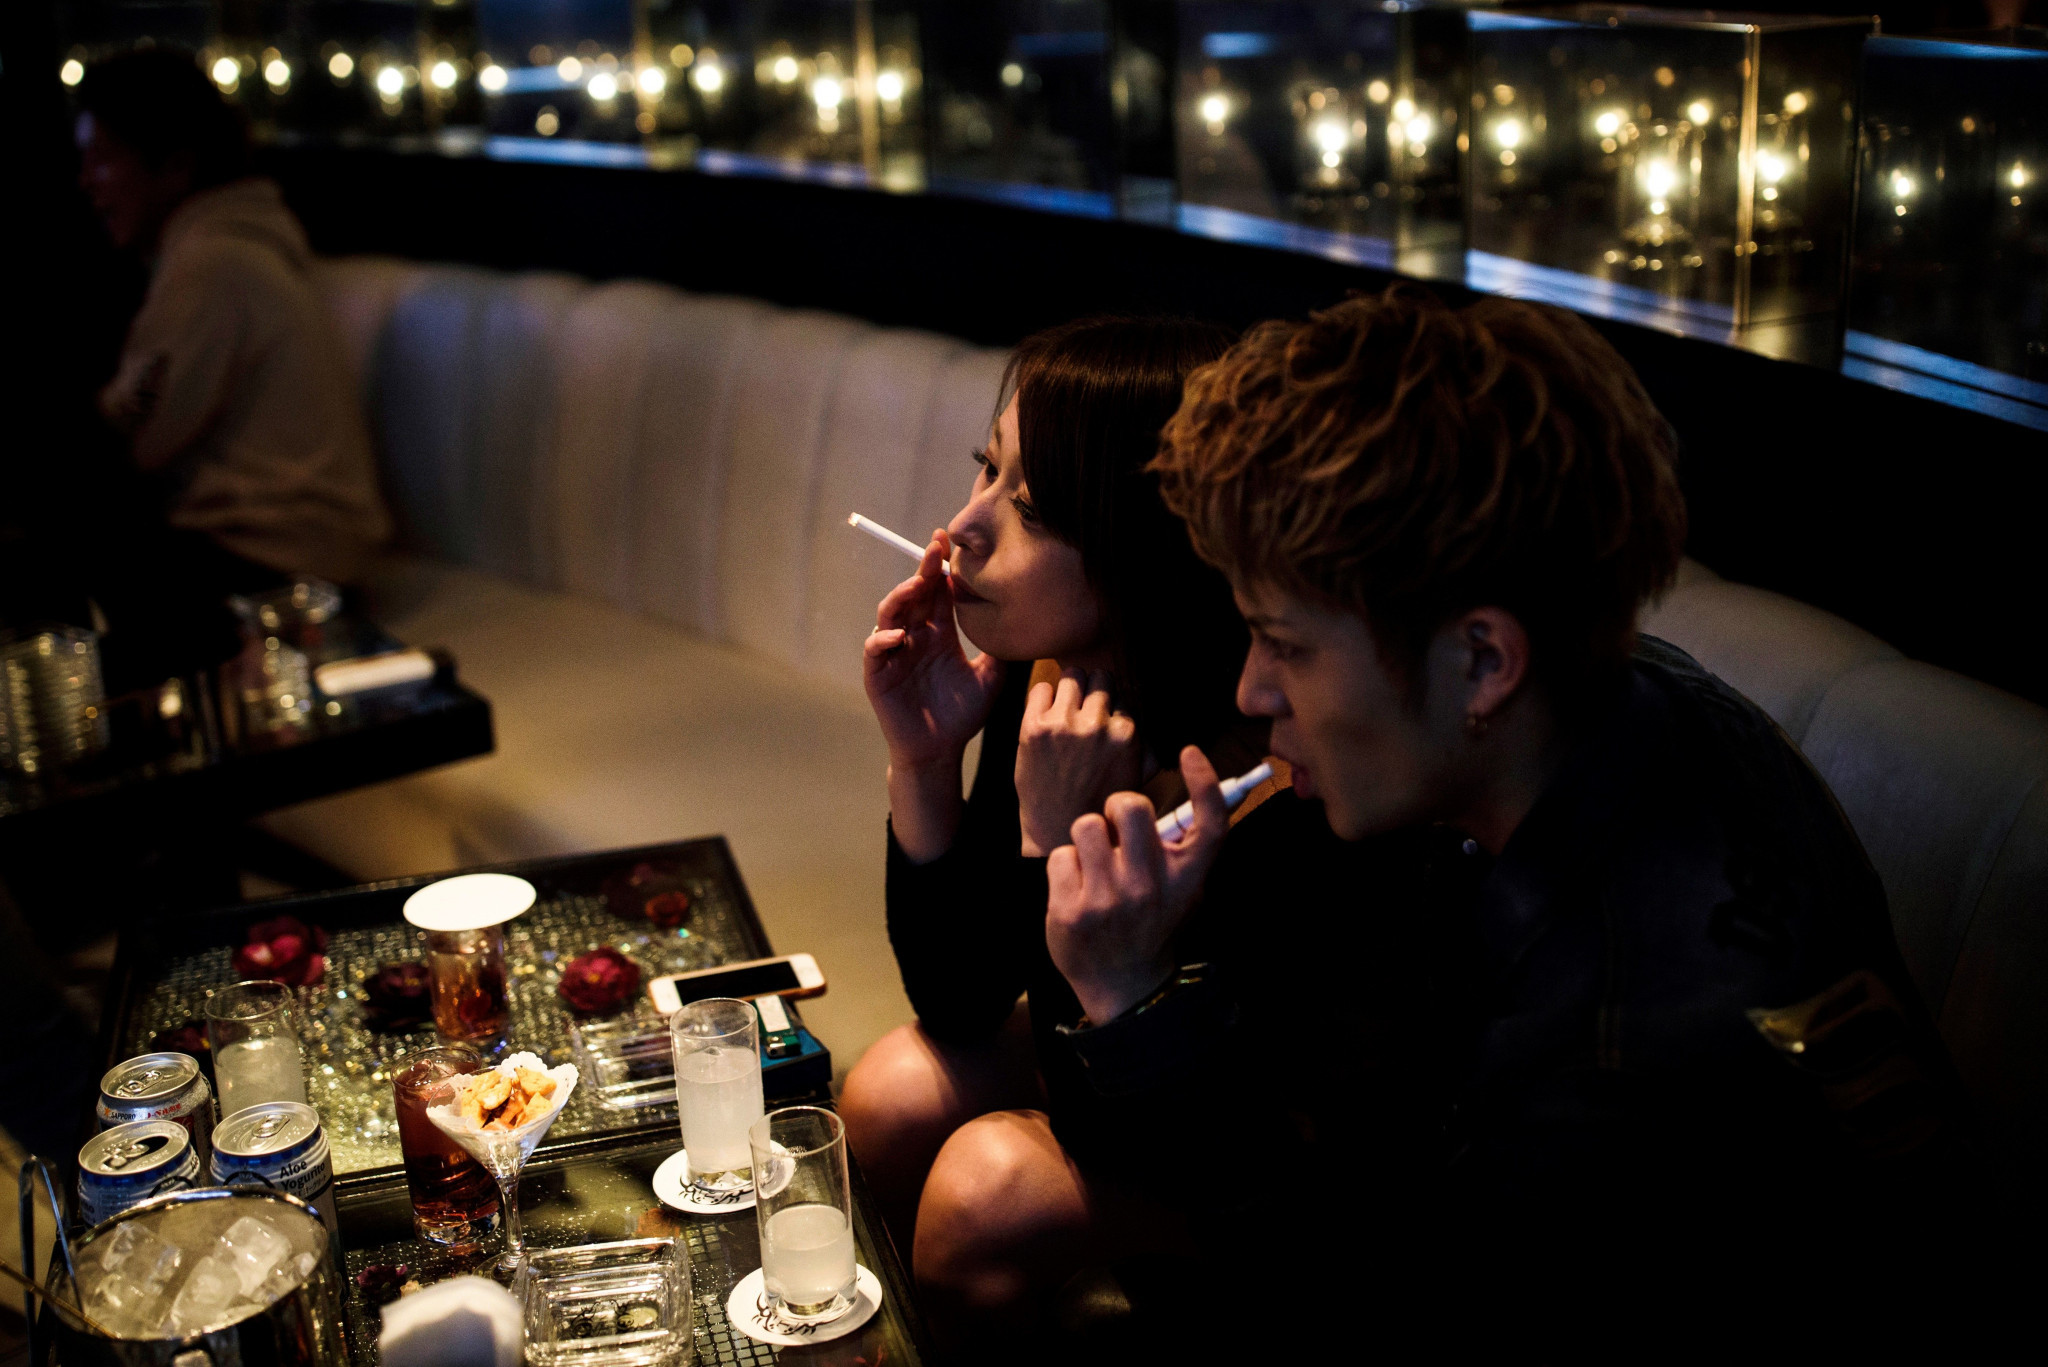 It is still legal to smoke in many public places in Japan, despite the introduction of new legislation ©Getty Images